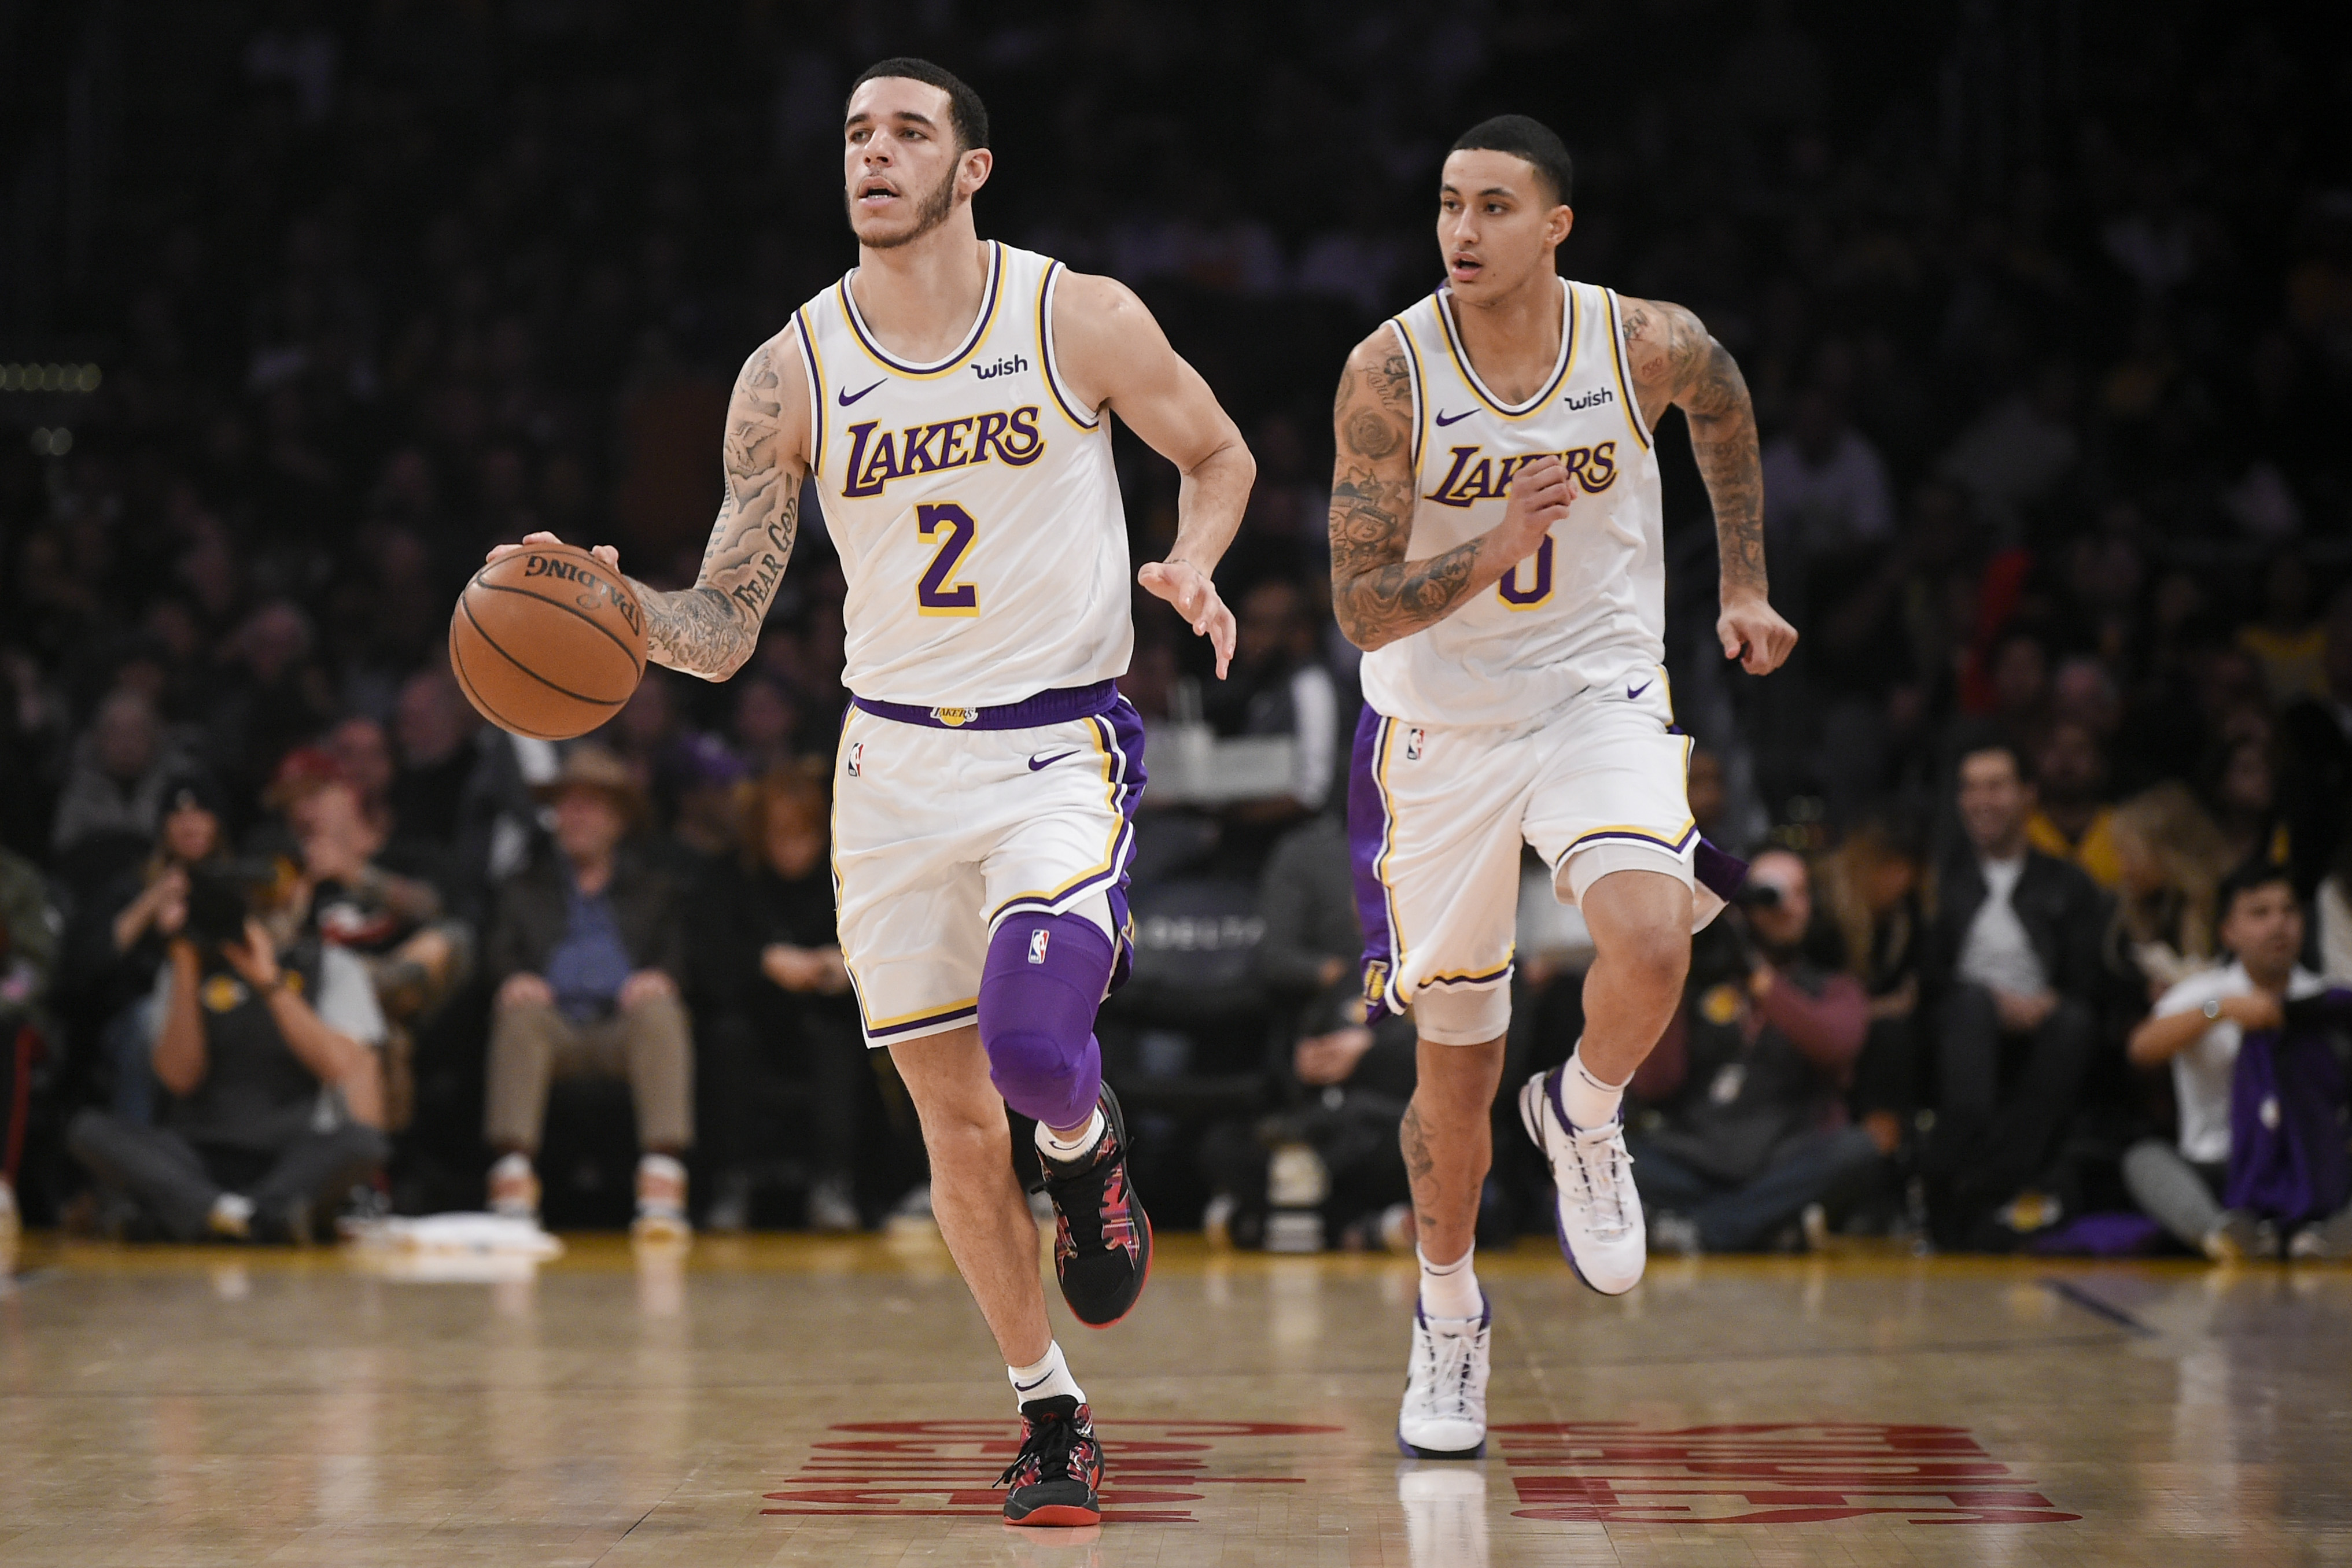 cc1764f85921 Lonzo Ball hints at potential endorsement deal with Nike on social ...